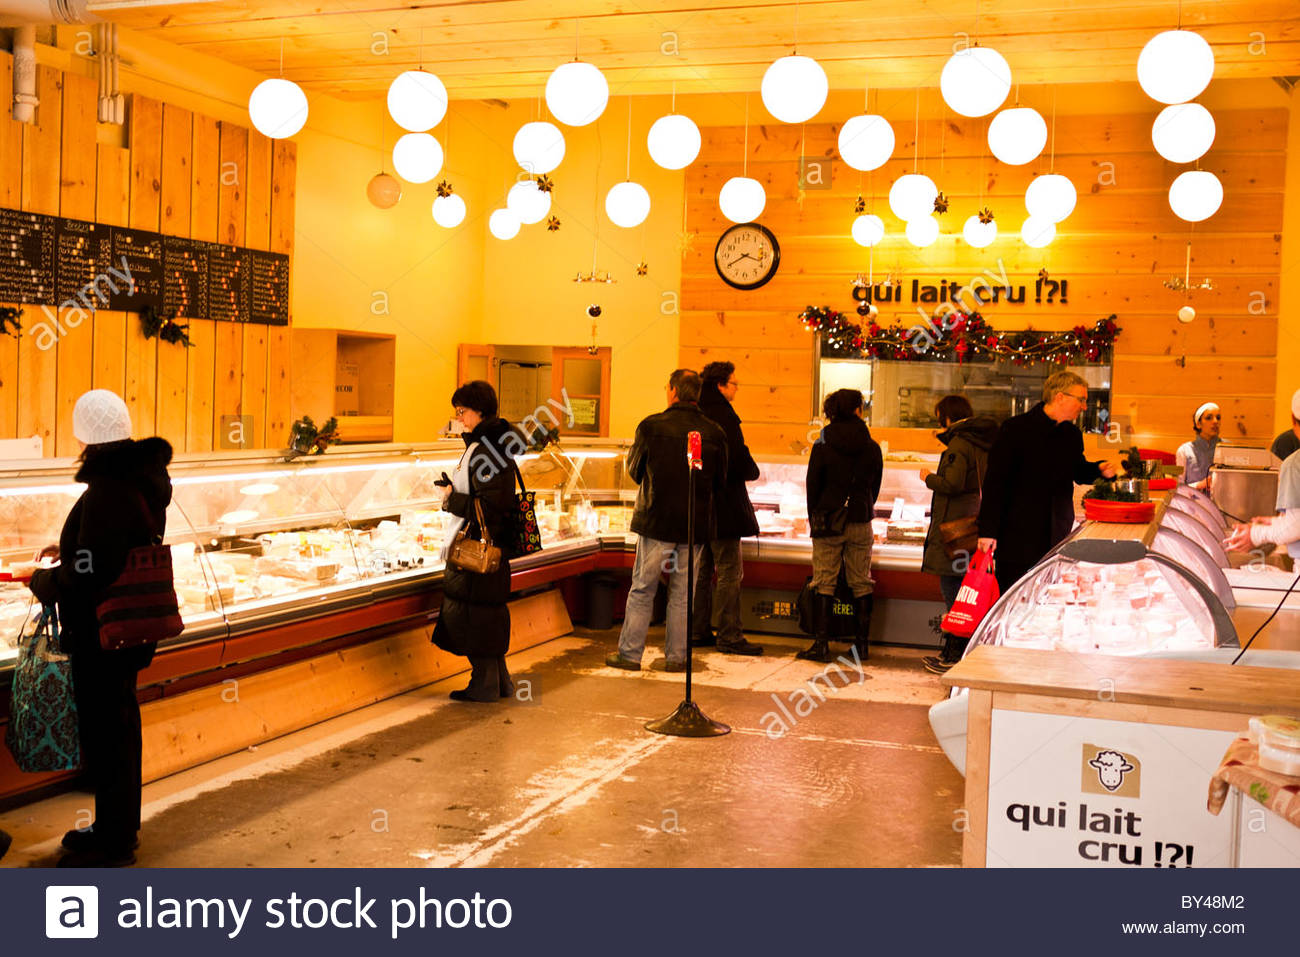 MONTREAL, Canada - Customers in a modern fromagerie at the the Jean-Talon Market in Montreal, Canada. - Stock Image